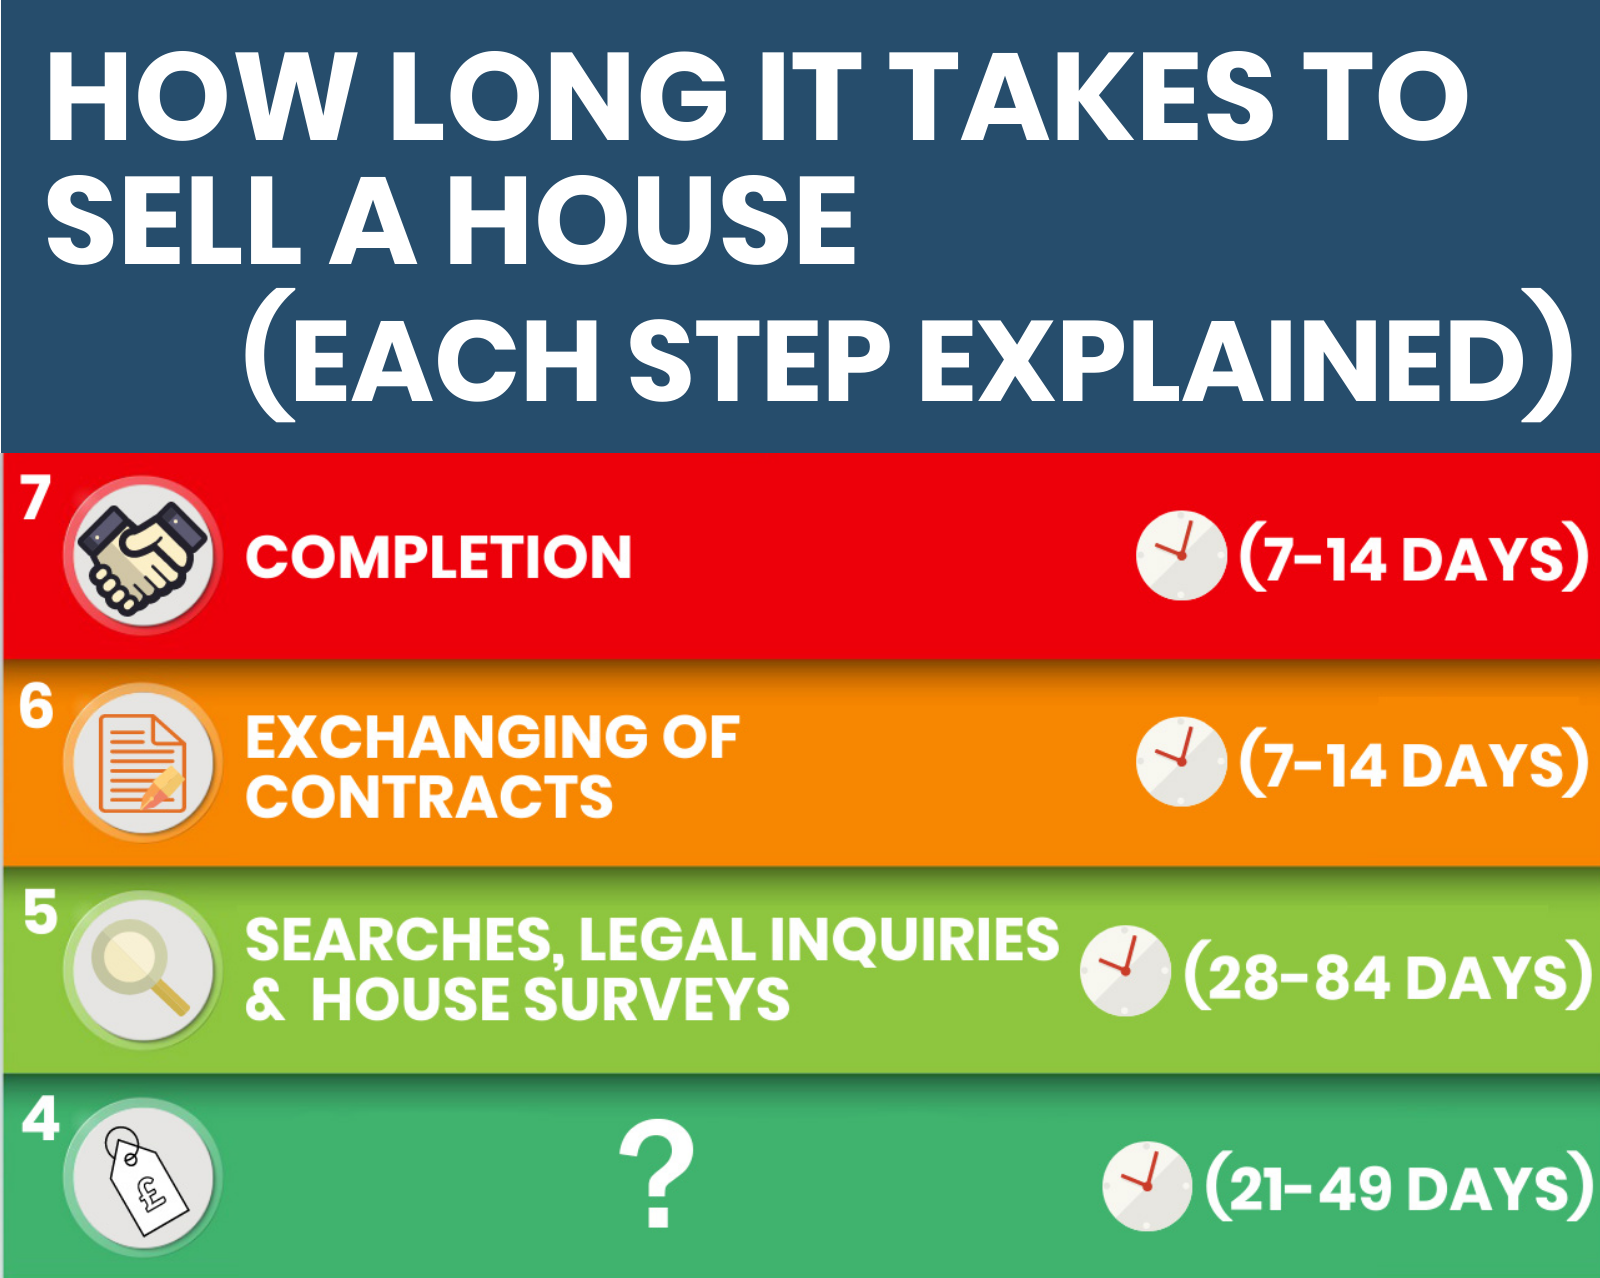 How long it takes to sell a house with every step explained